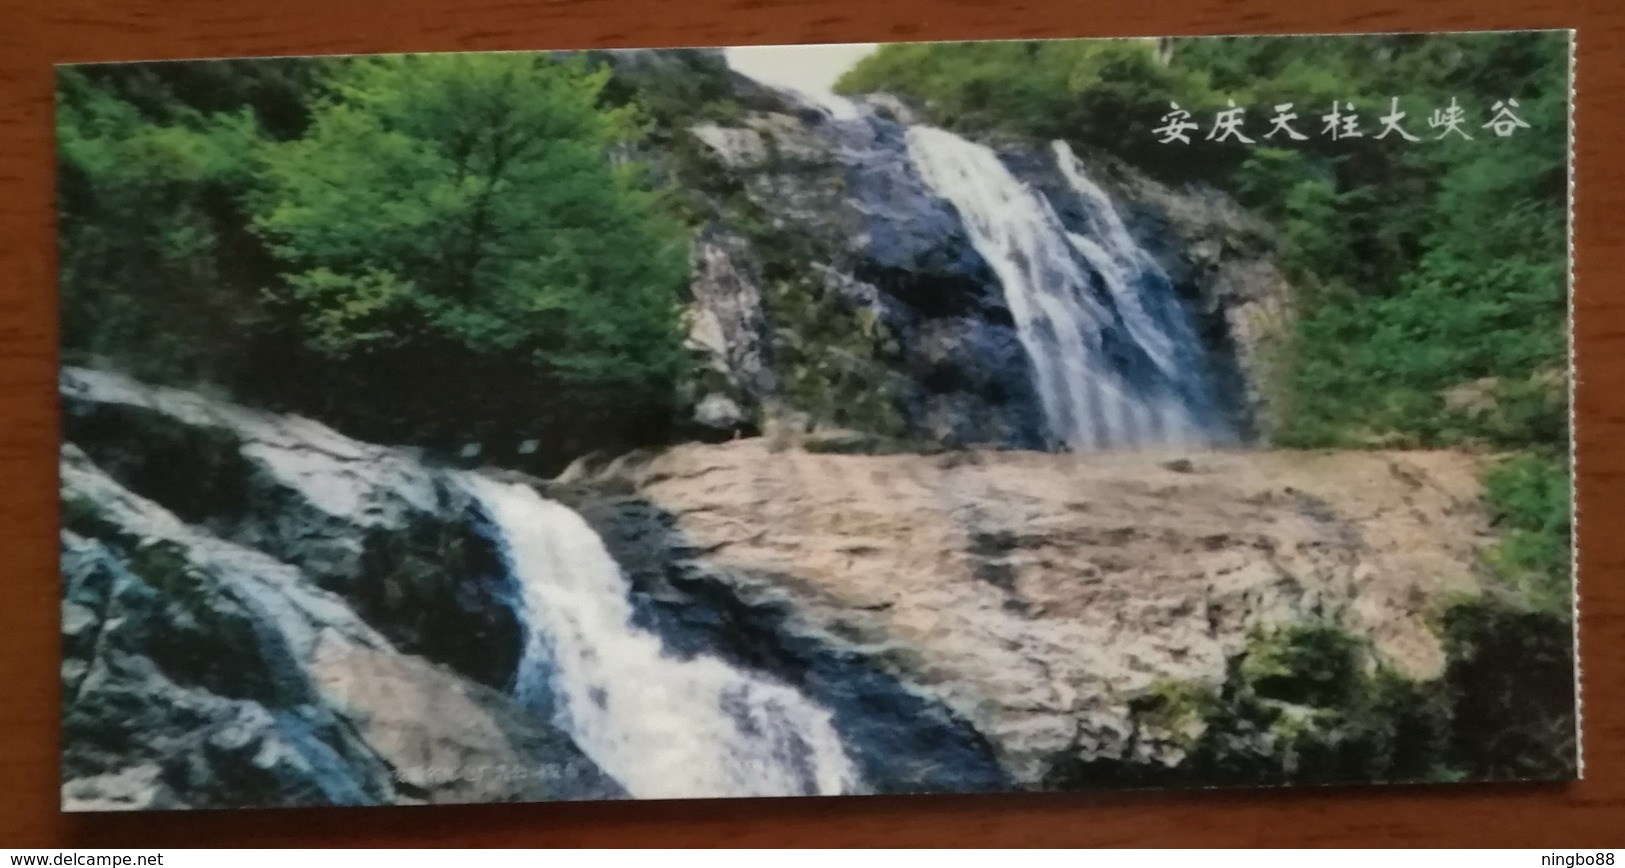 Tianzhu Grand Valley Waterfall,China 2014 National 5A Level Scenic Spot Ticket Advertising Pre-stamped Card - Holidays & Tourism